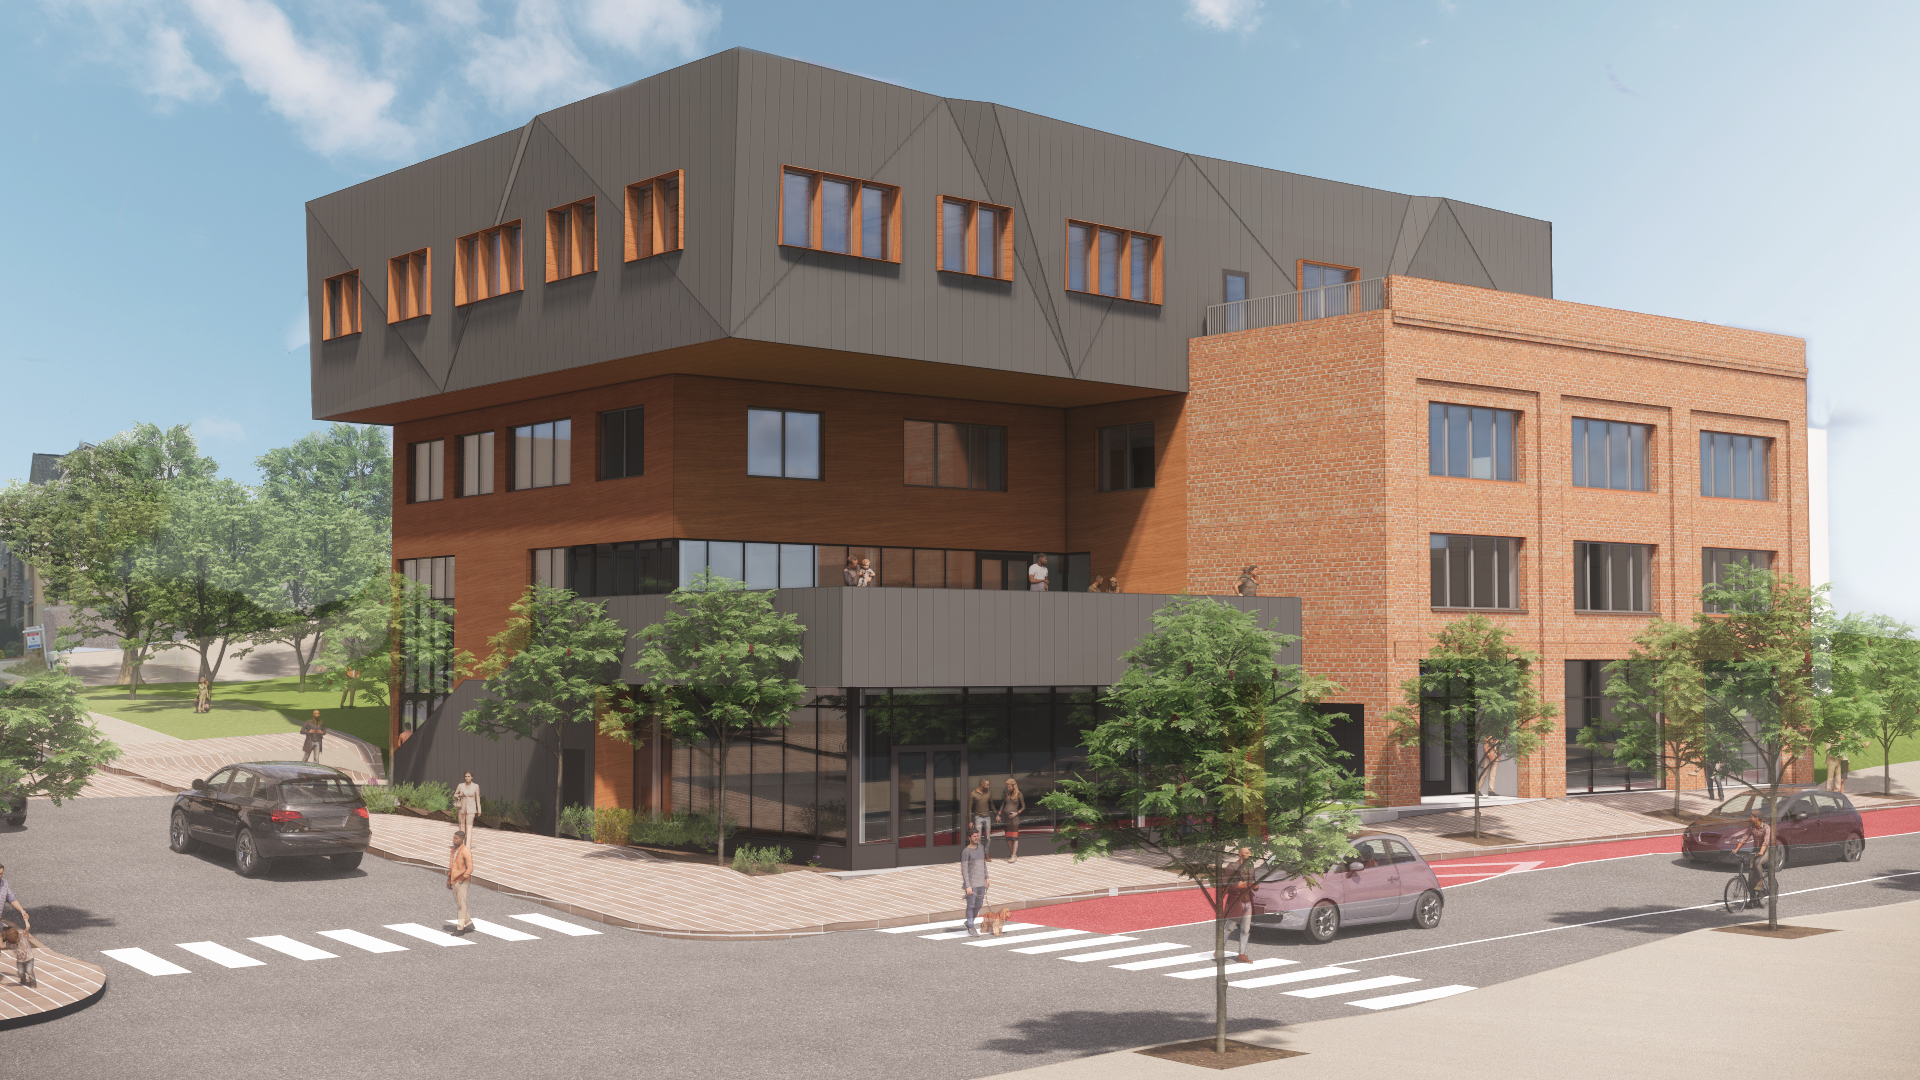 Update on an Ambitious Pittsburgh Passive House Development